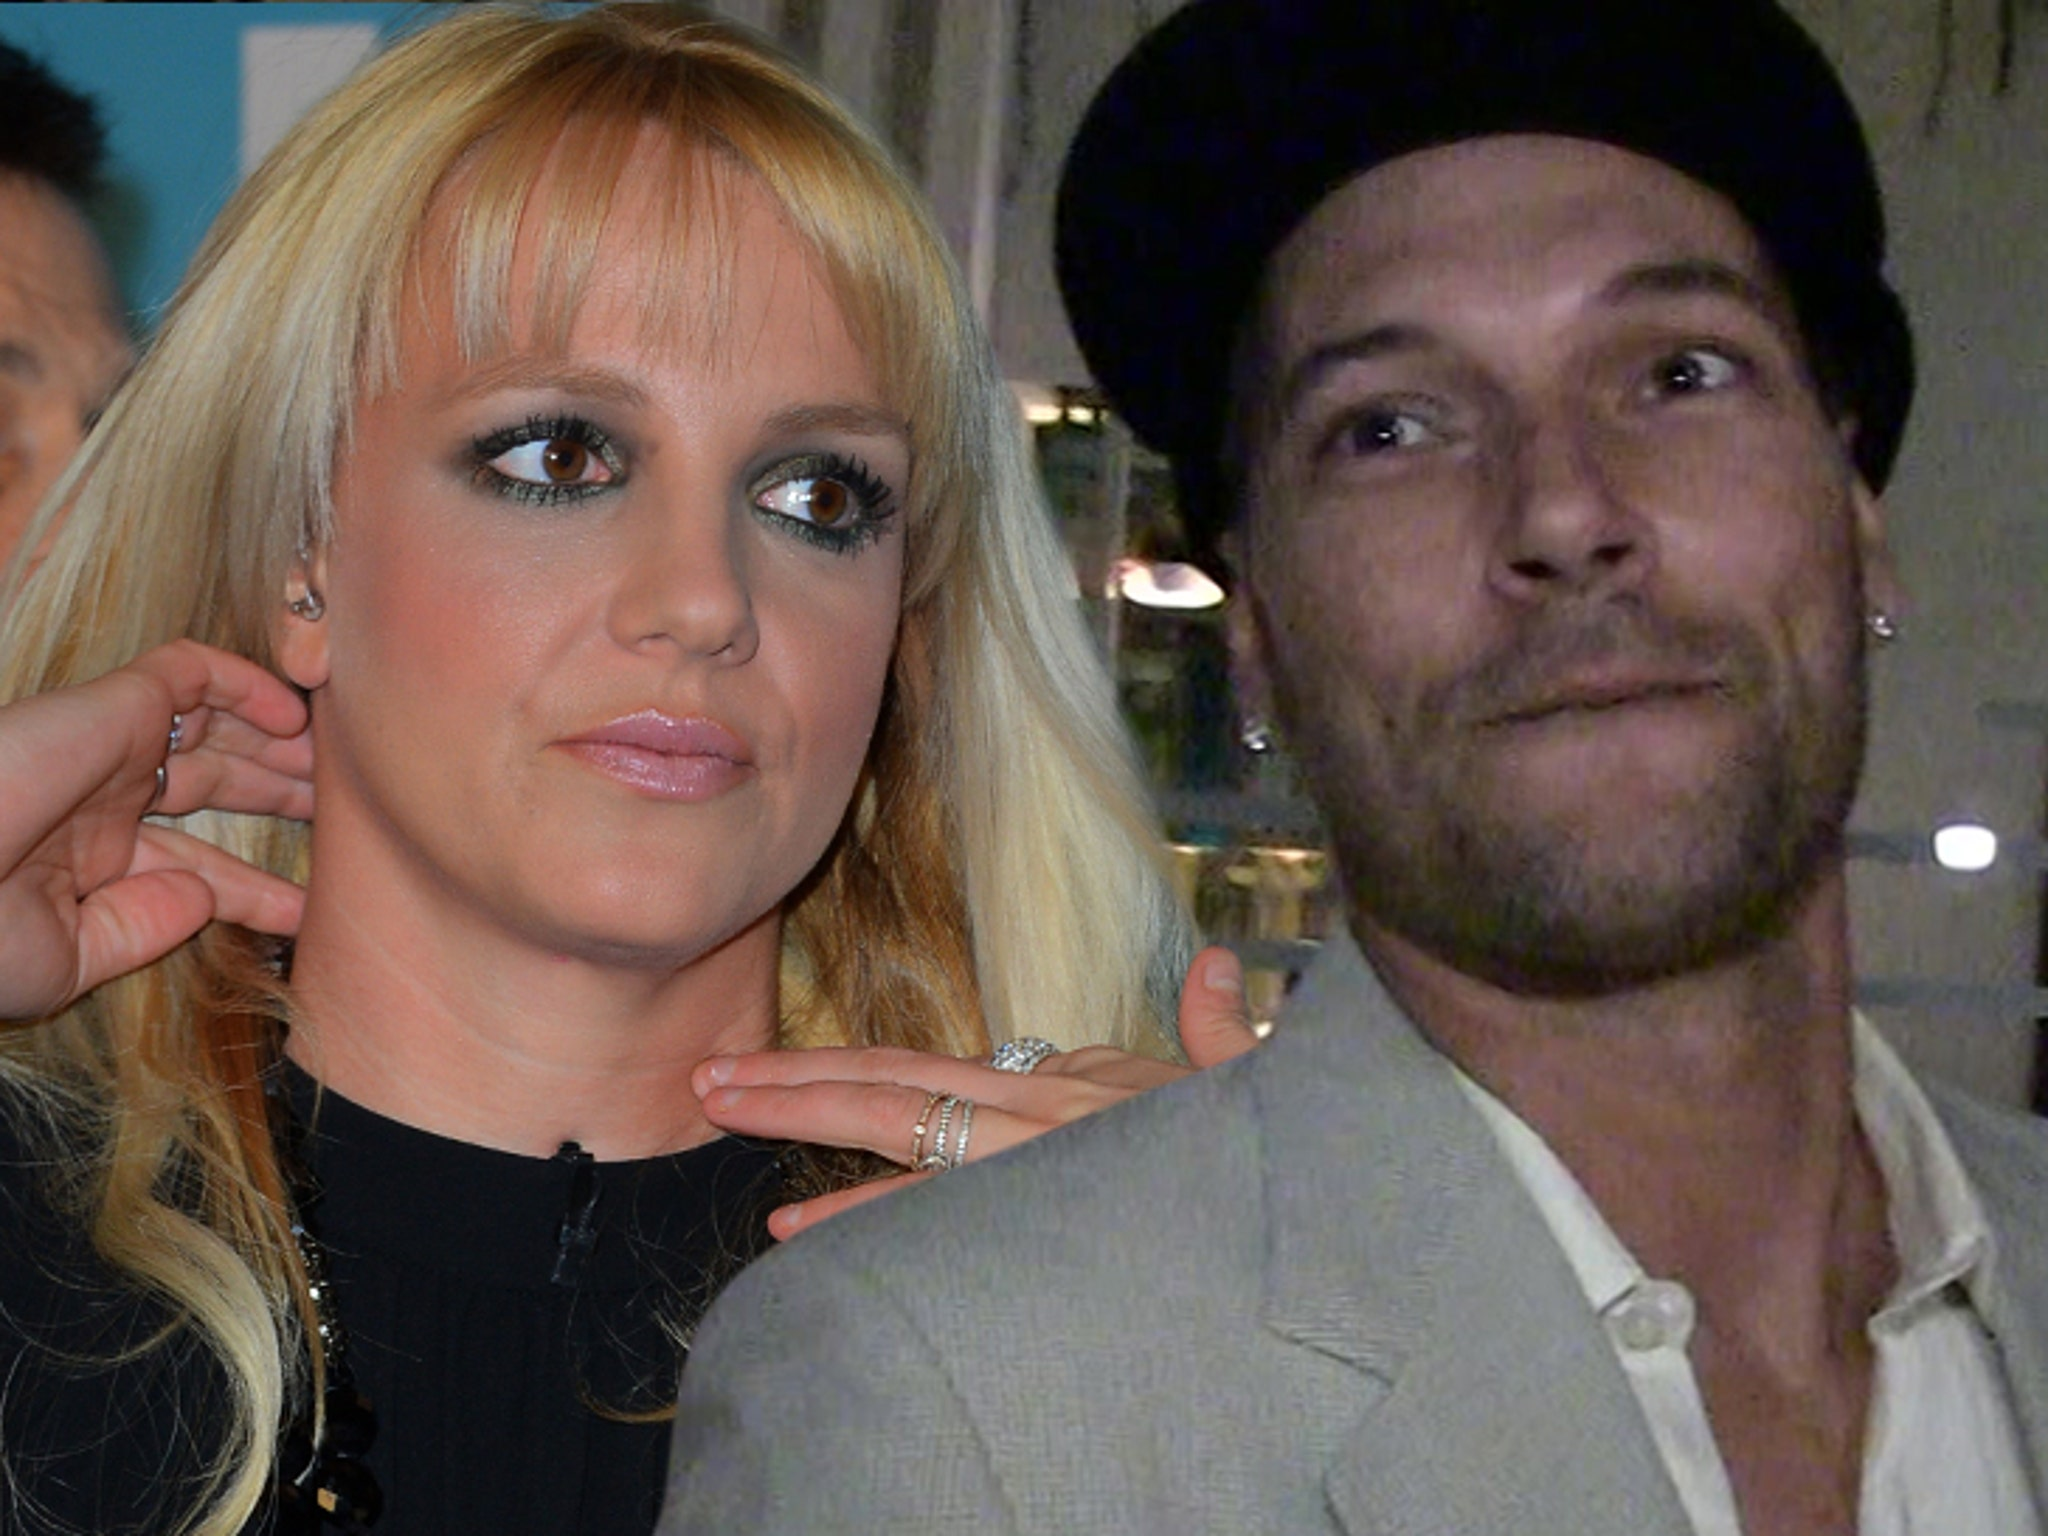 Britney Spears' Dad Wants Kevin Federline's Tax Returns to See if